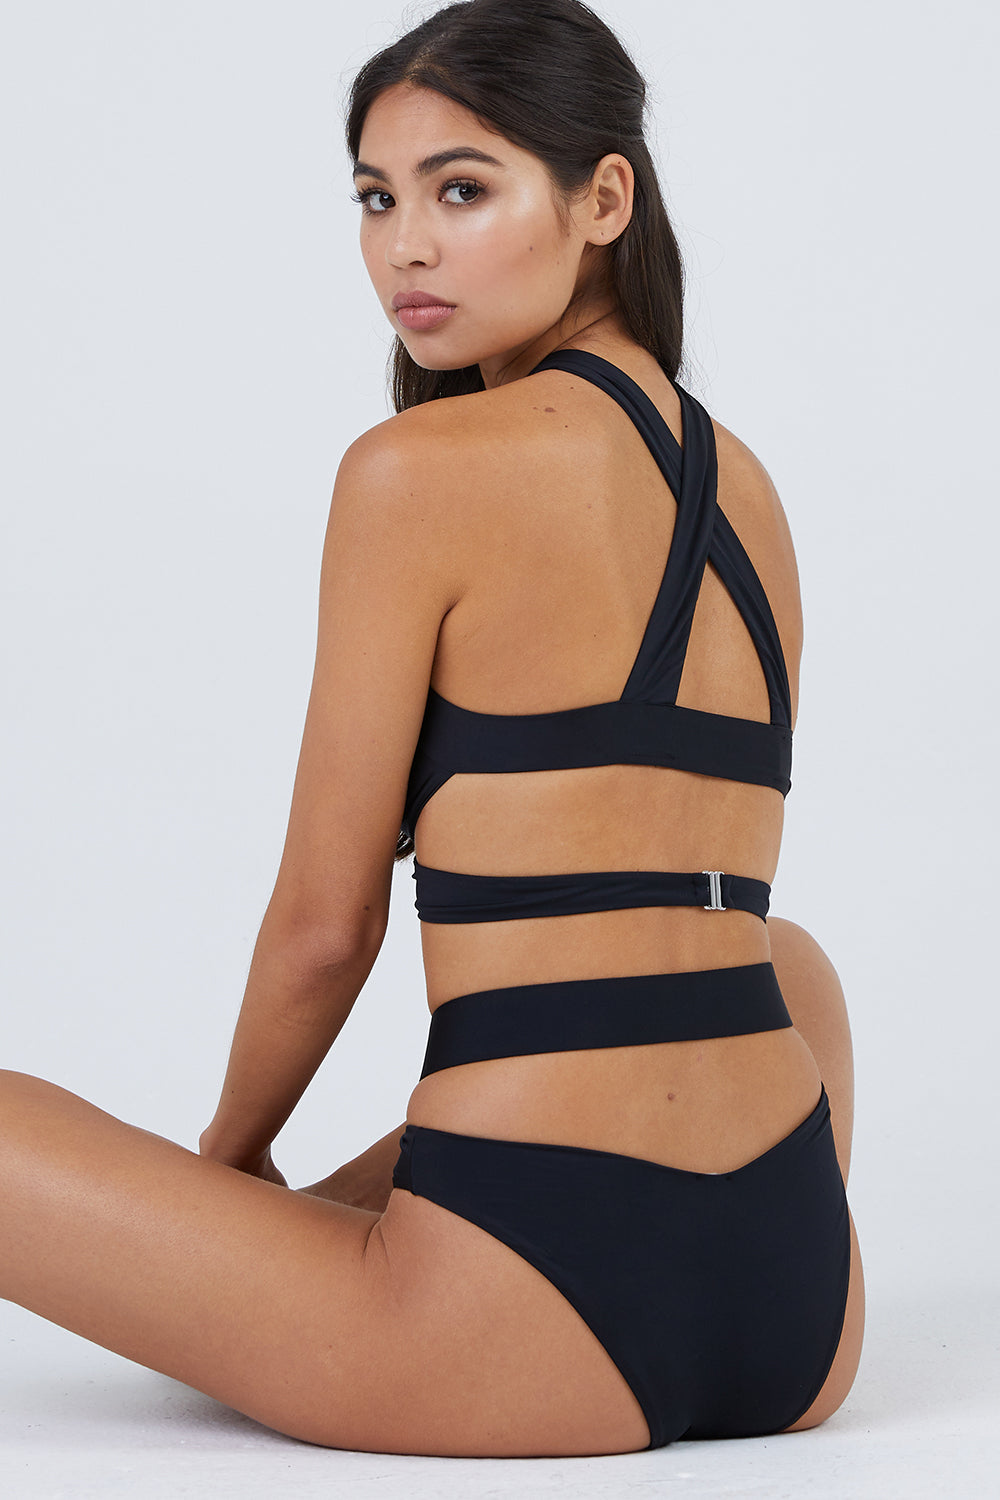 Endless Summer Wrap Around Bikini Bottom - Black